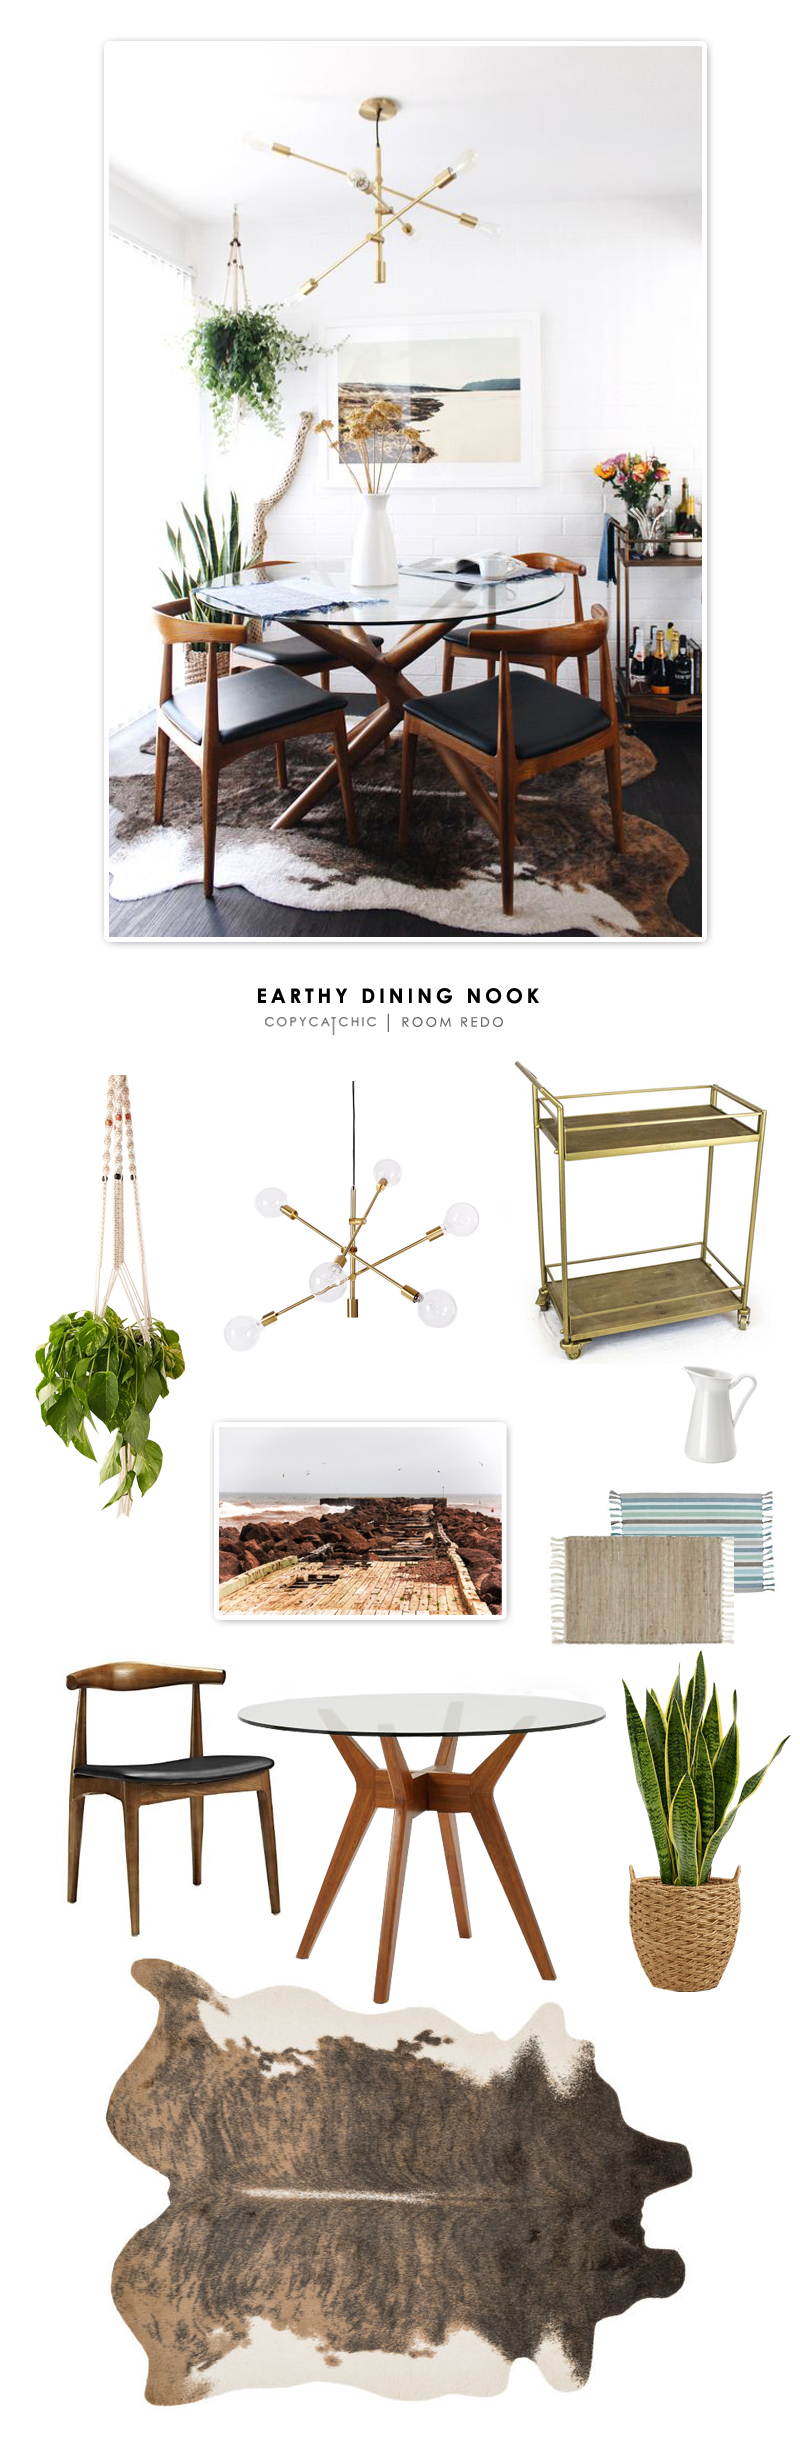 Copy Cat Chic Room Redo | Earthy Dining Nook - copycatchic